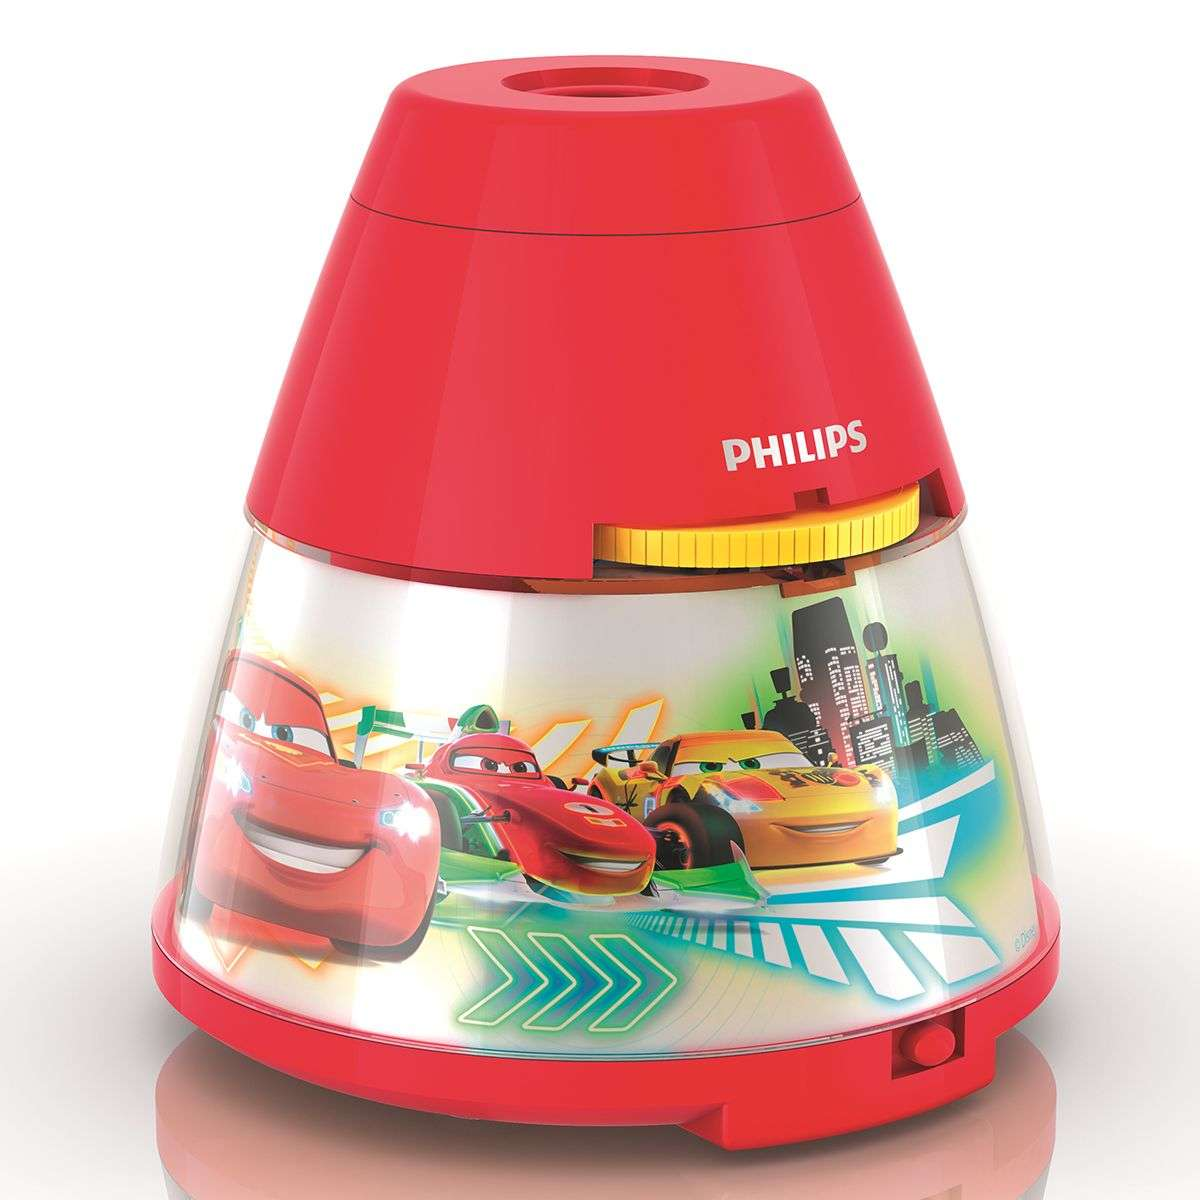 Disney led table lamp cars with projector lights disney led table lamp cars with projector 7531546 31 mozeypictures Choice Image